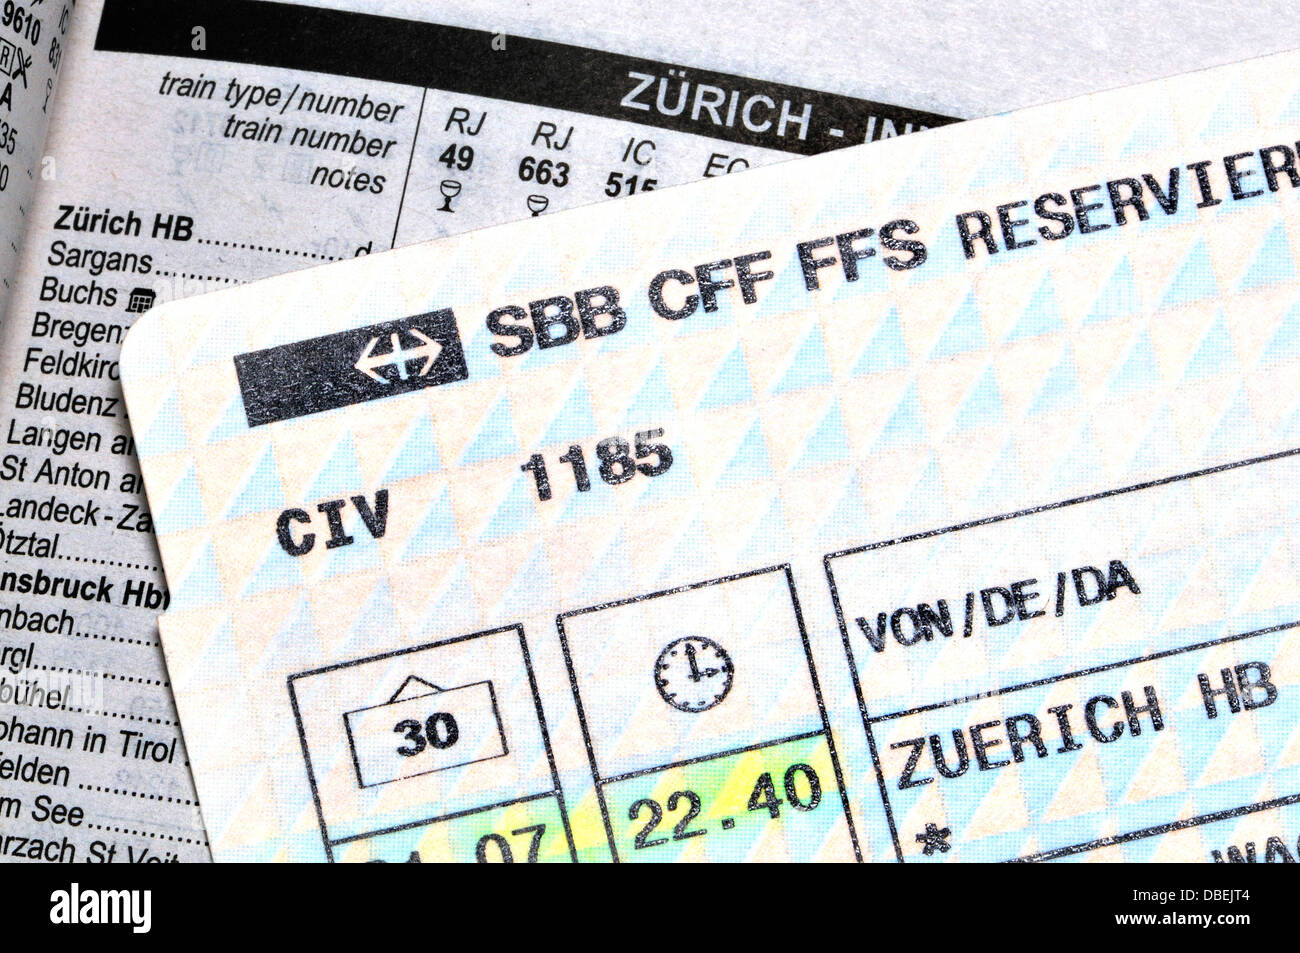 Rail Ticket and Timetable - Zurich - Stock Image